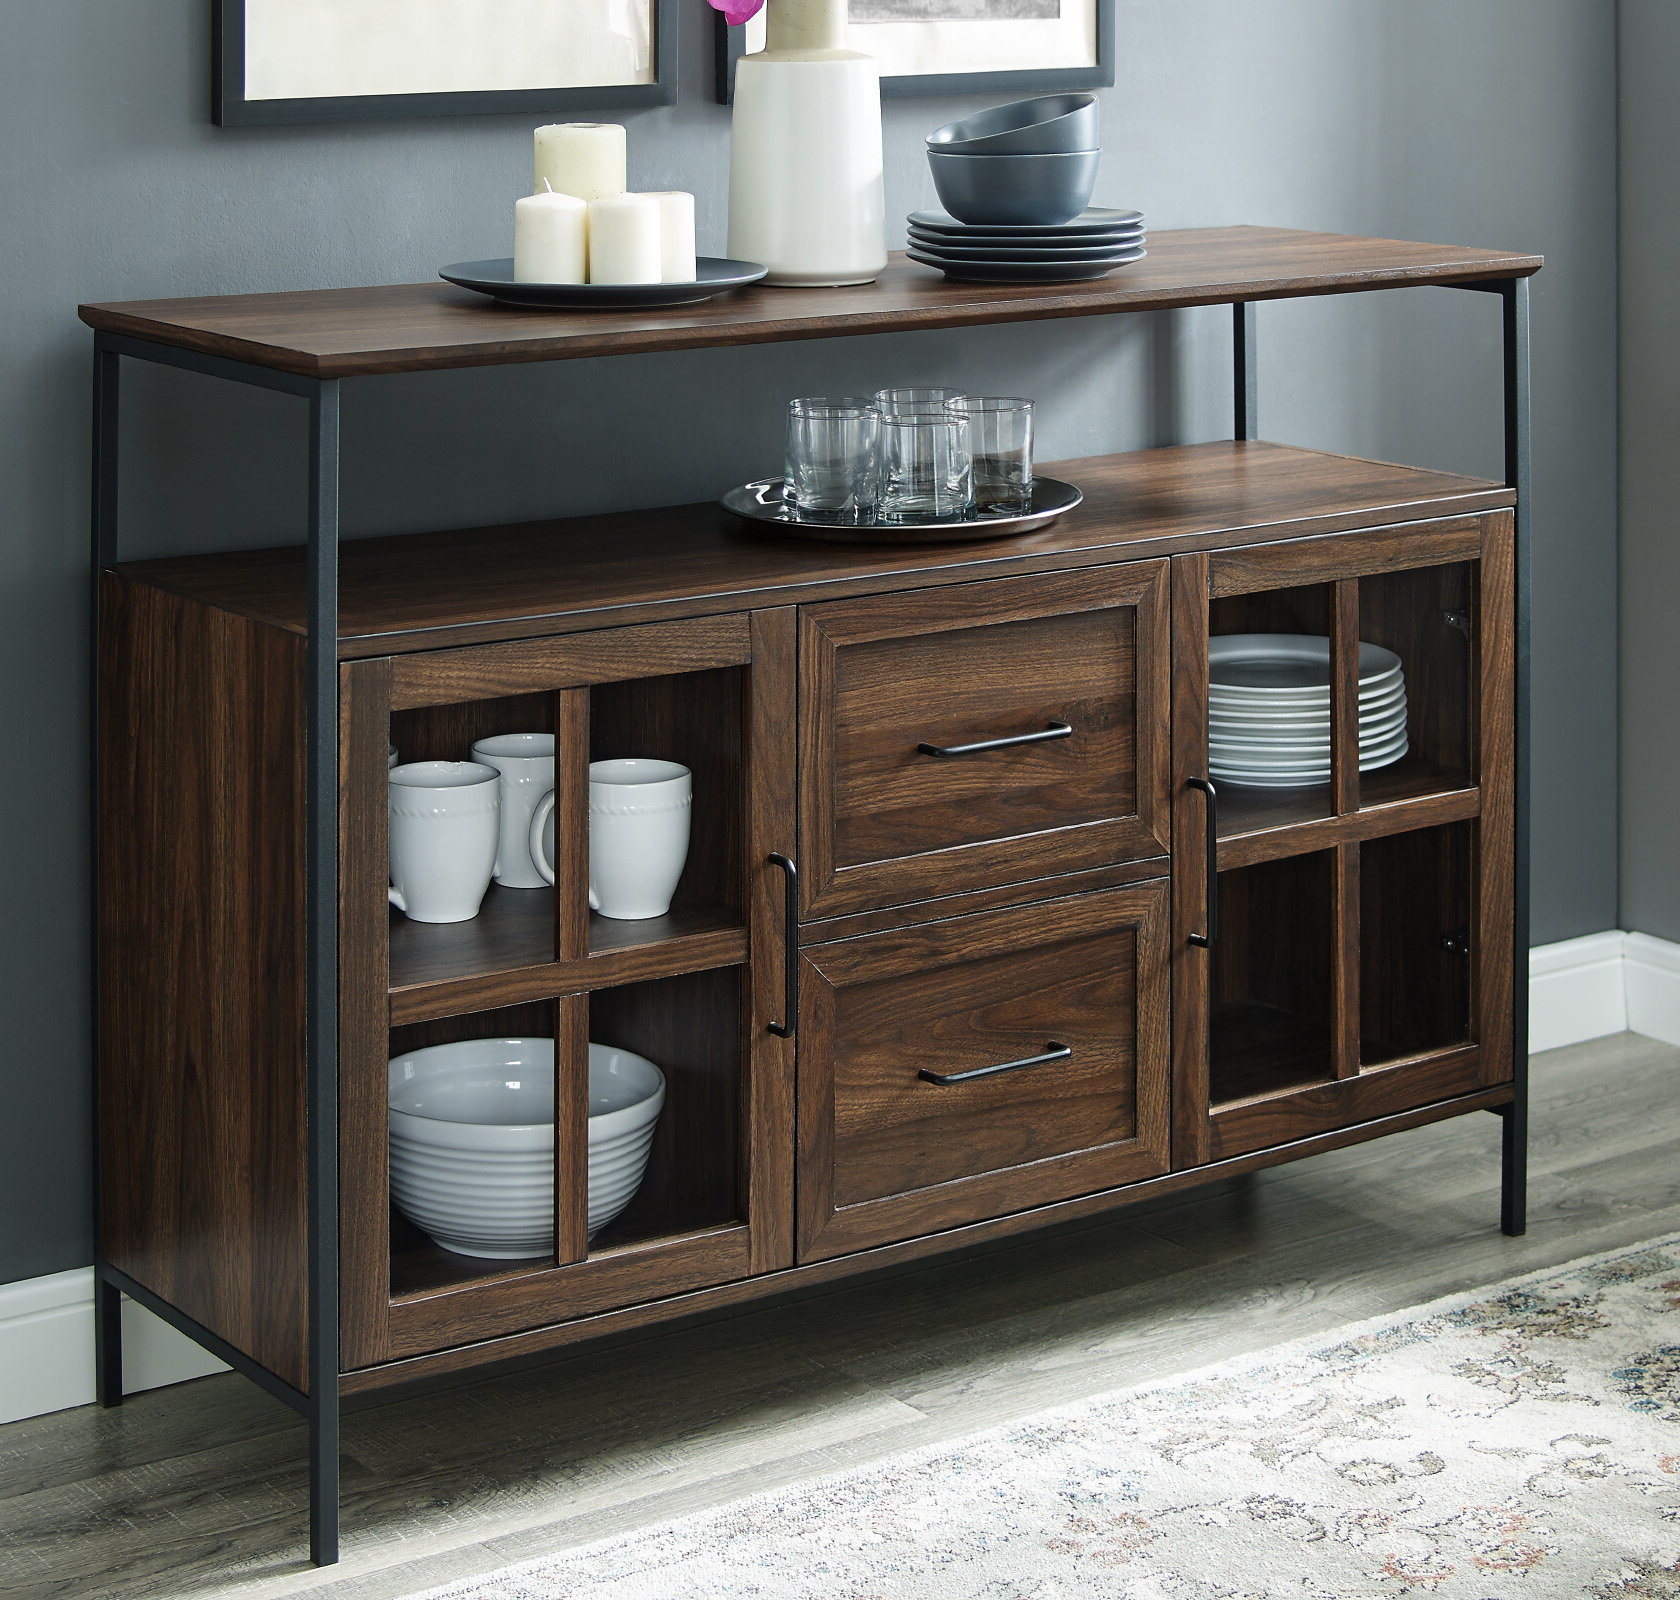 Narrow Buffet Table   Wayfair Within Contemporary Three Tier Glass Buffets With Black Metal Frame (View 12 of 20)